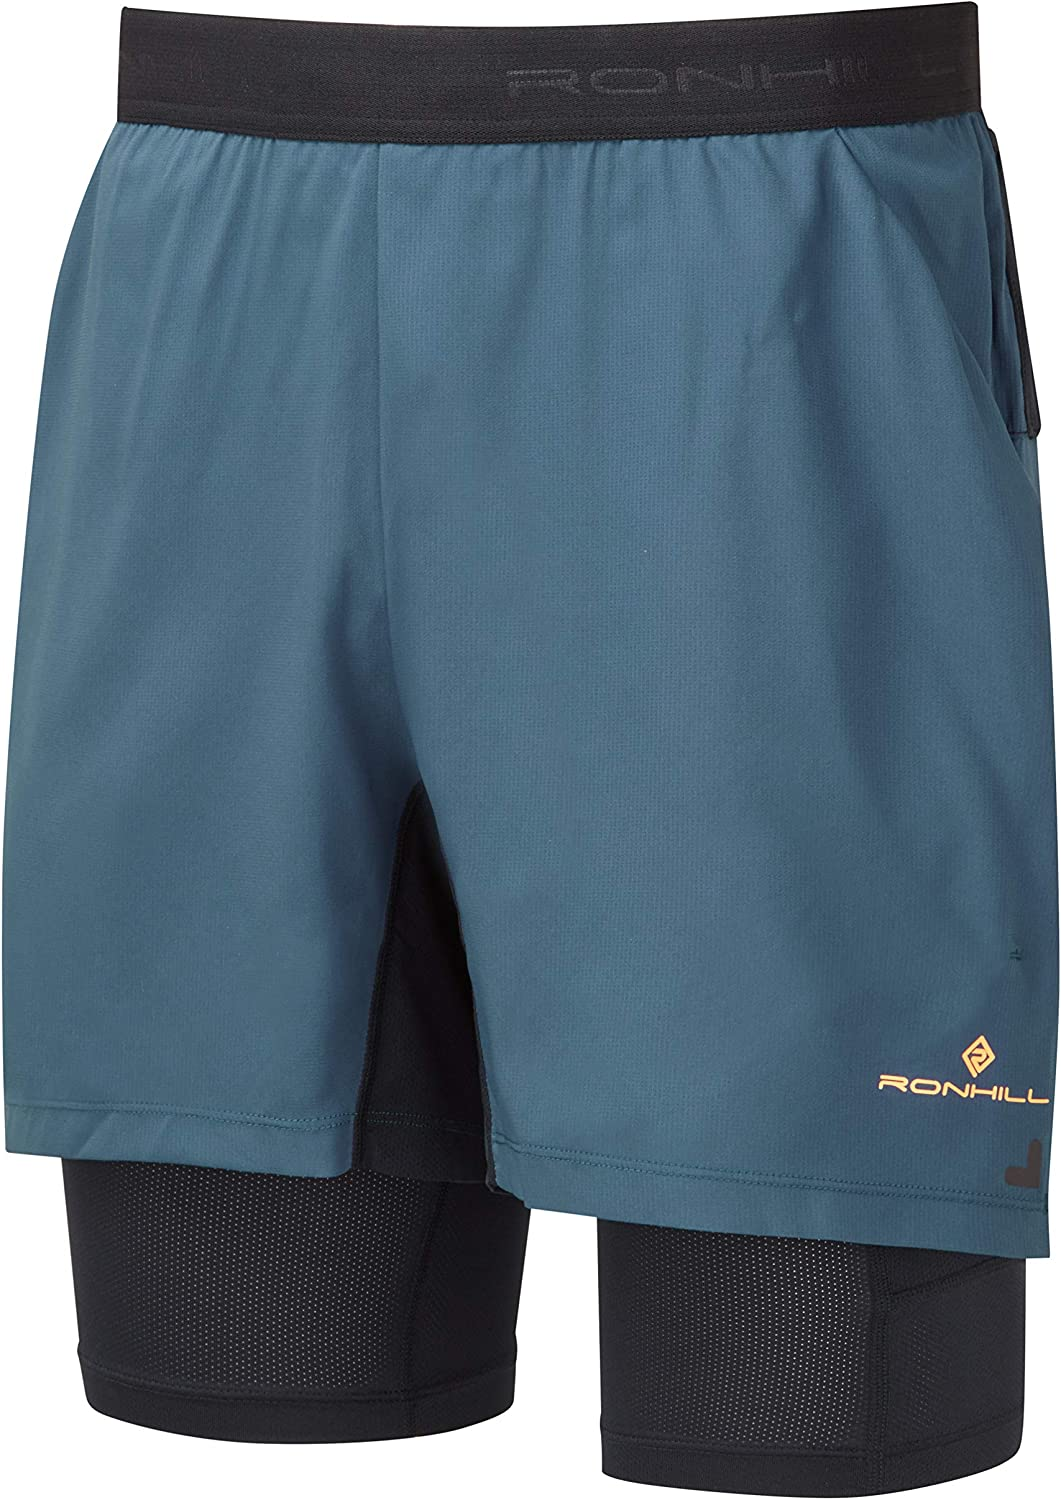 Limited Special Price Ronhill Men's Tech Minneapolis Mall Short Twin Ultra